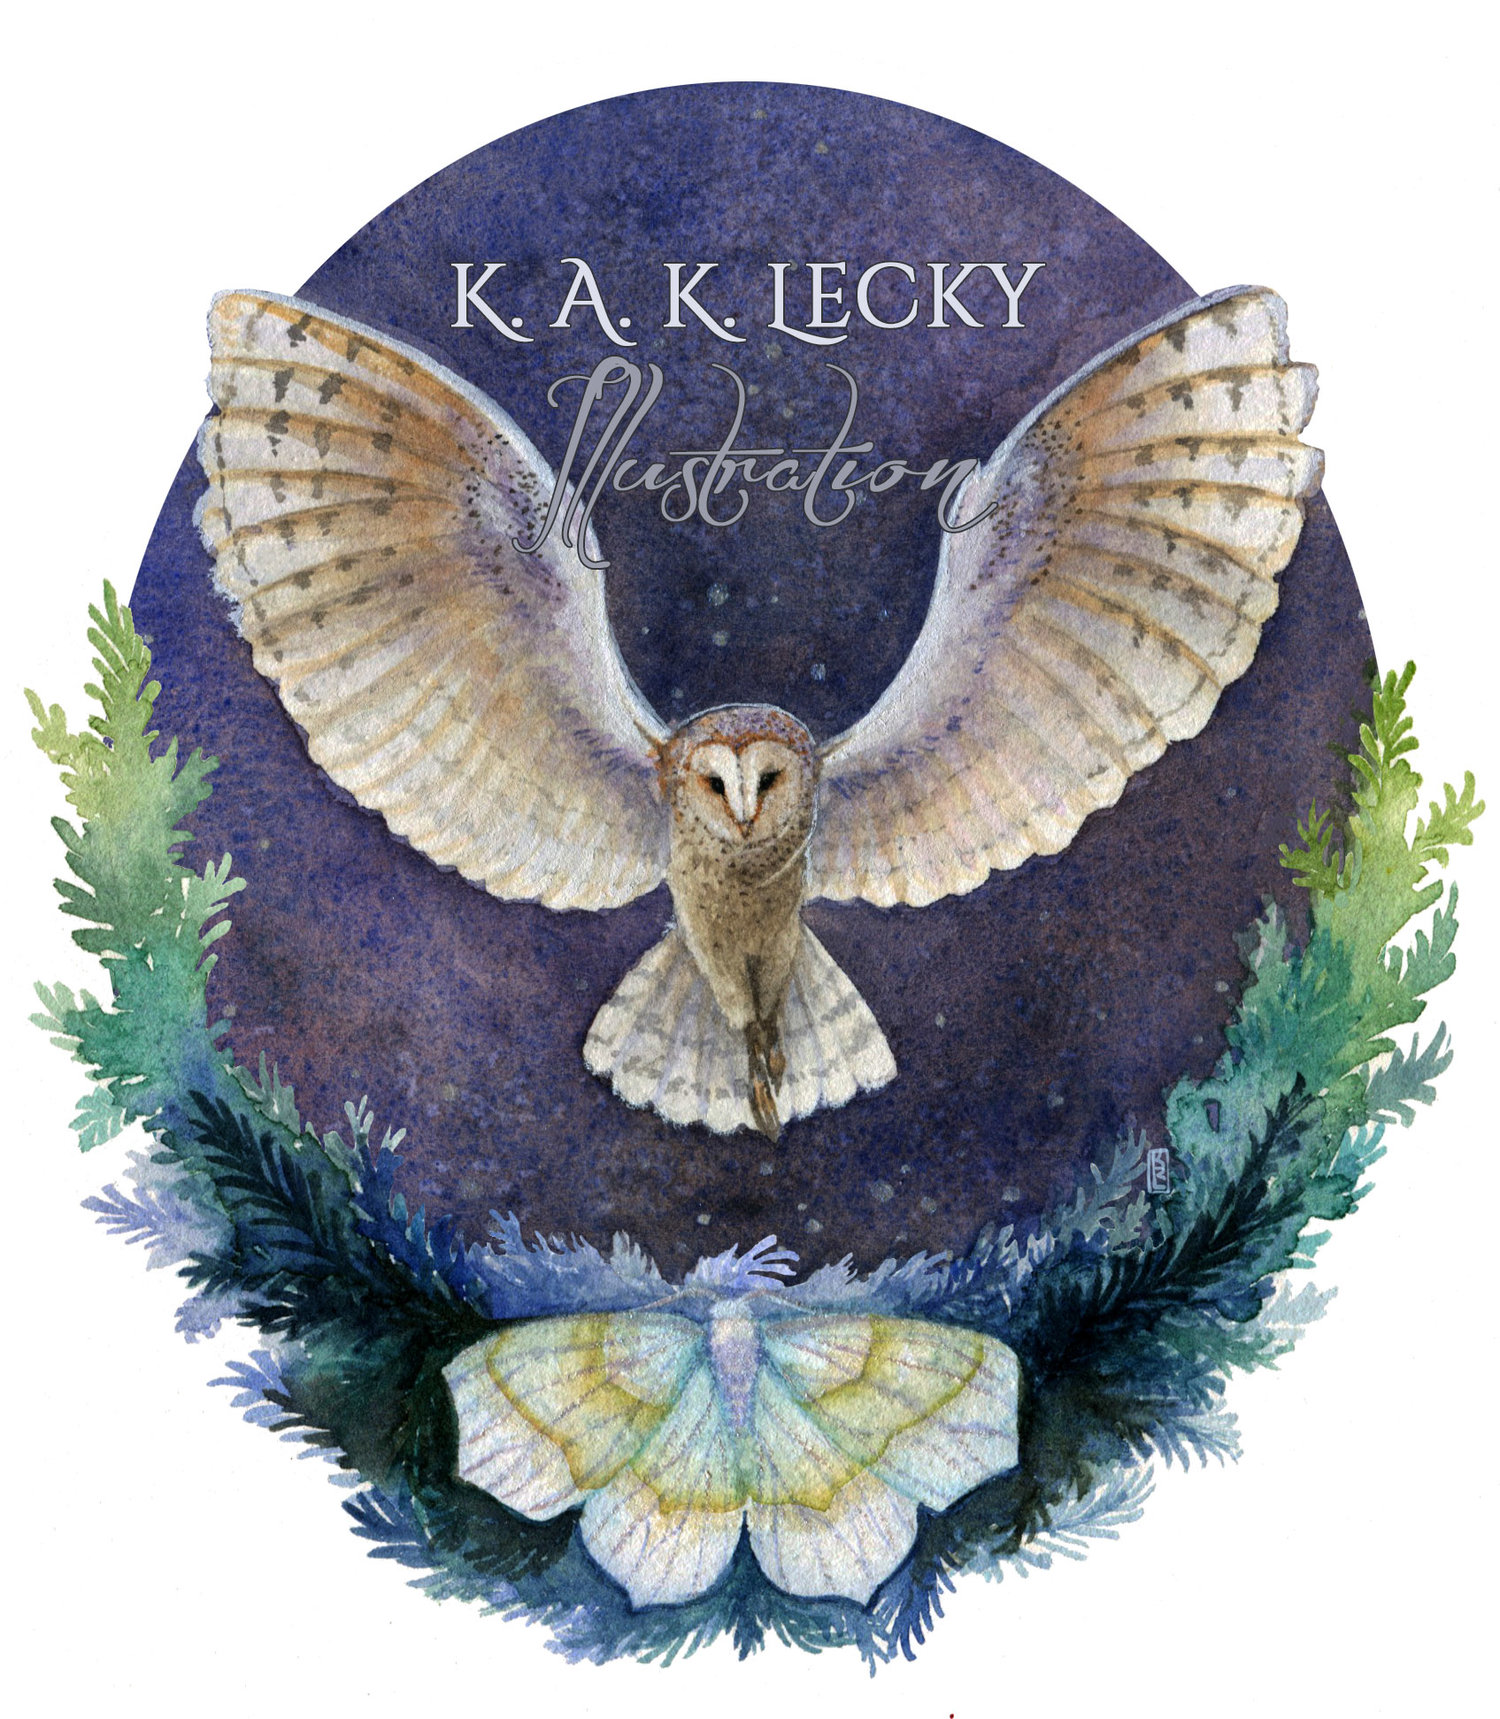 K. A. K. Lecky Illustration